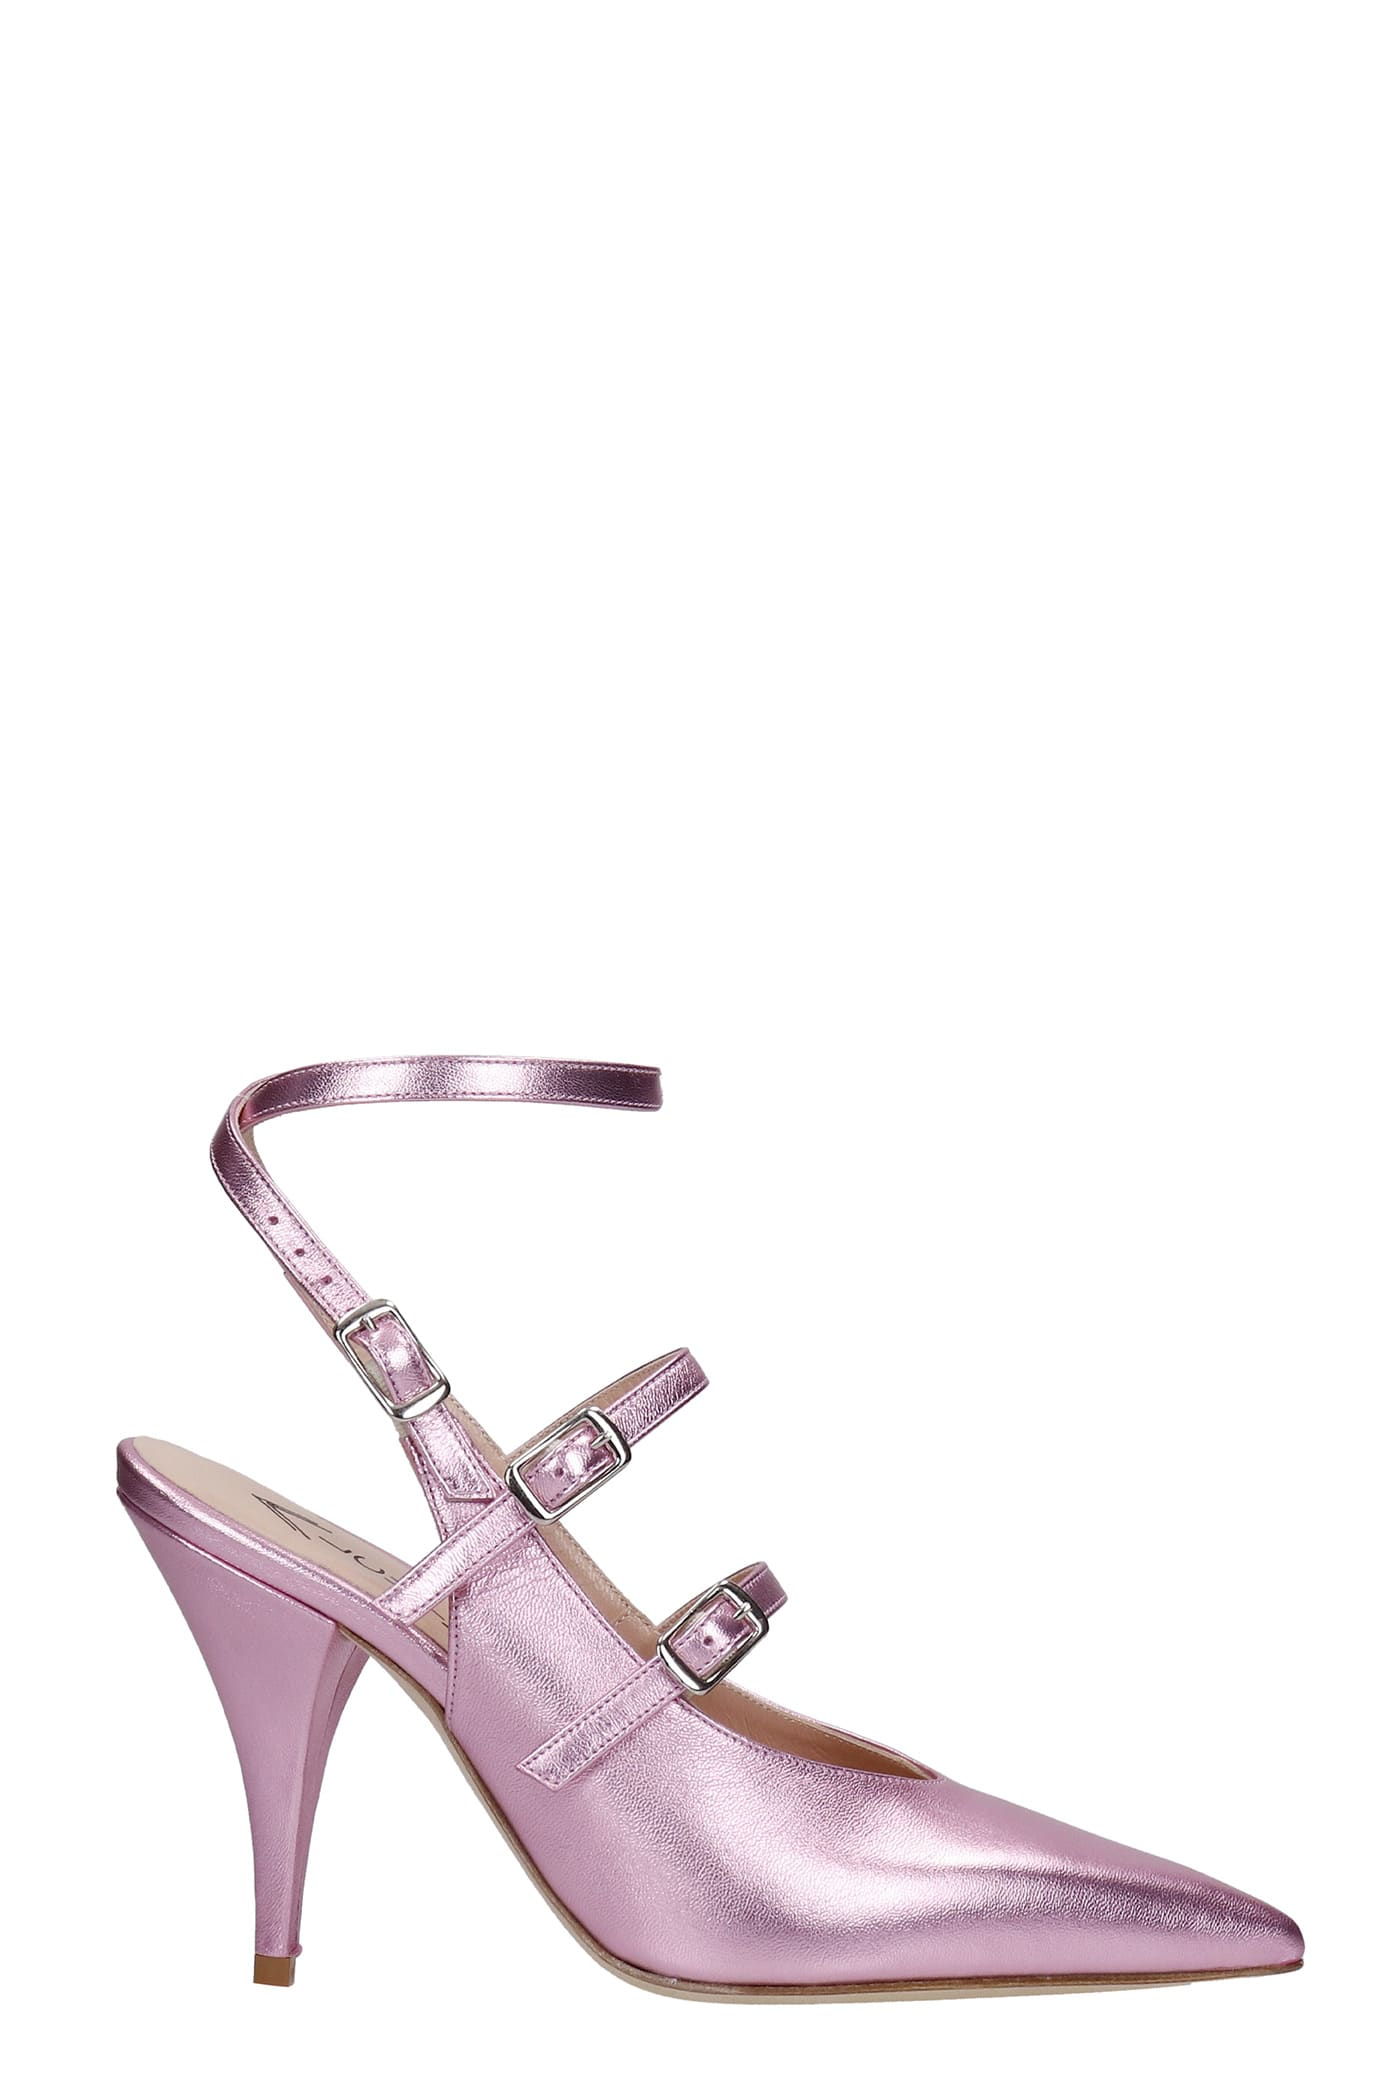 Pumps In Rose-pink Leather